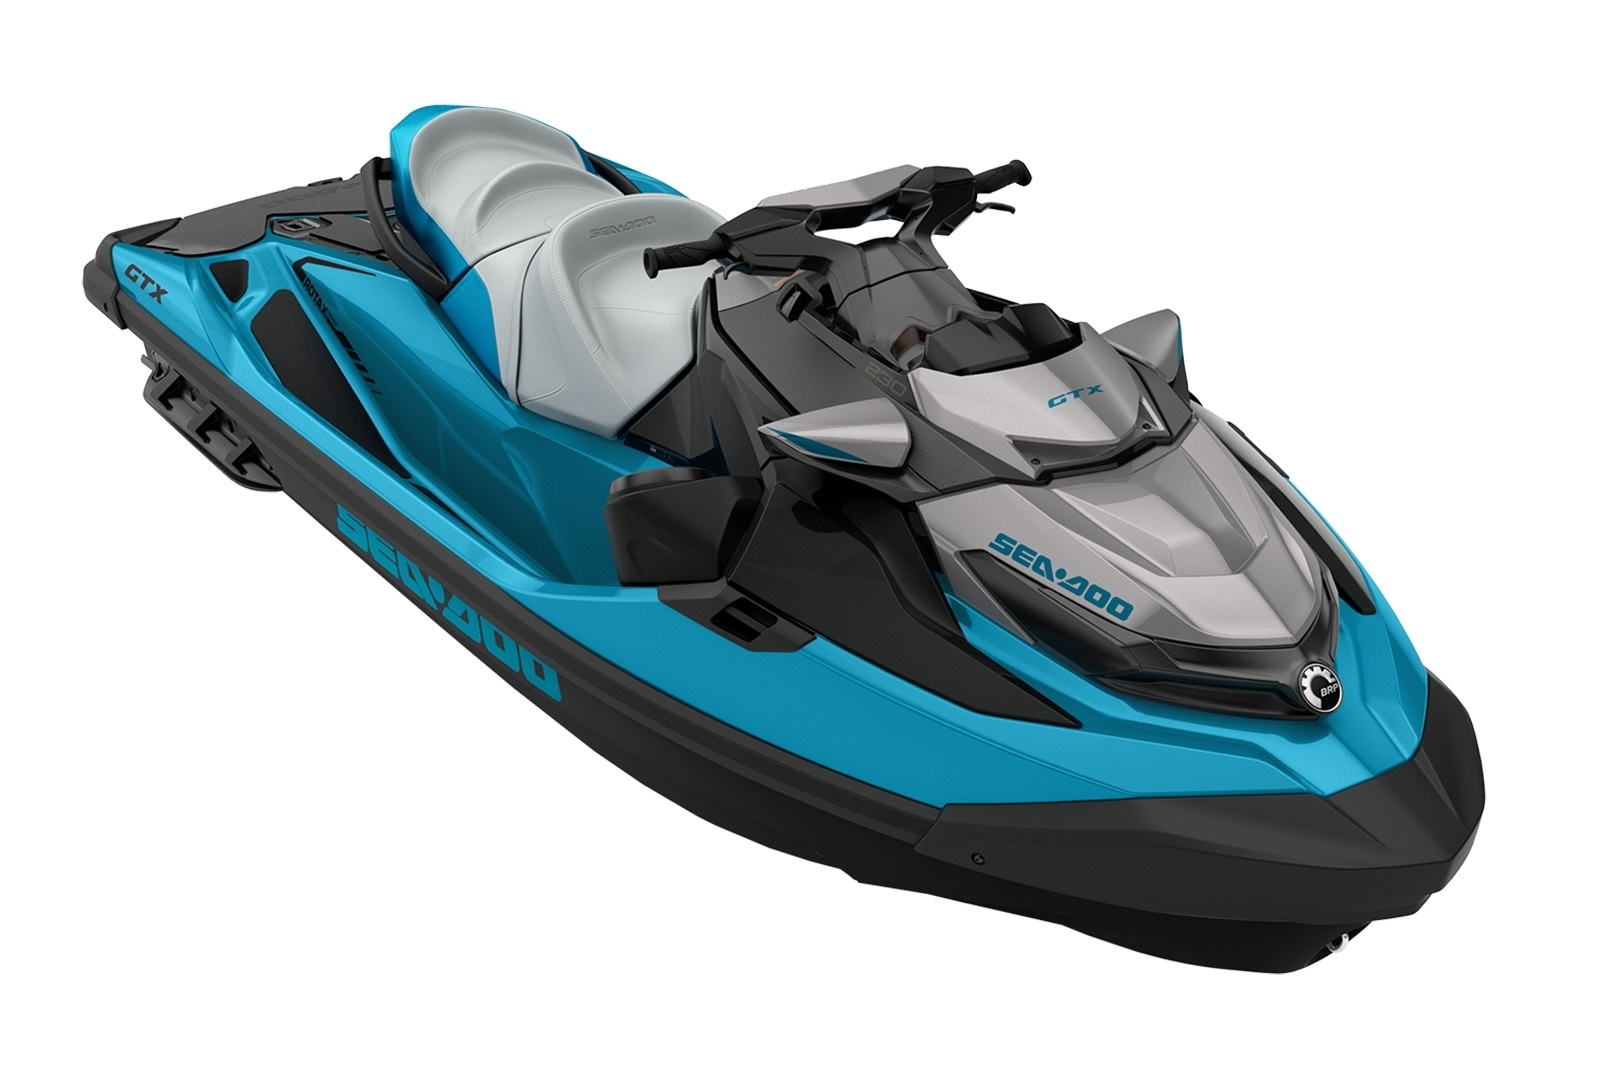 Sea Doo GTX STD 3-up 155 HP